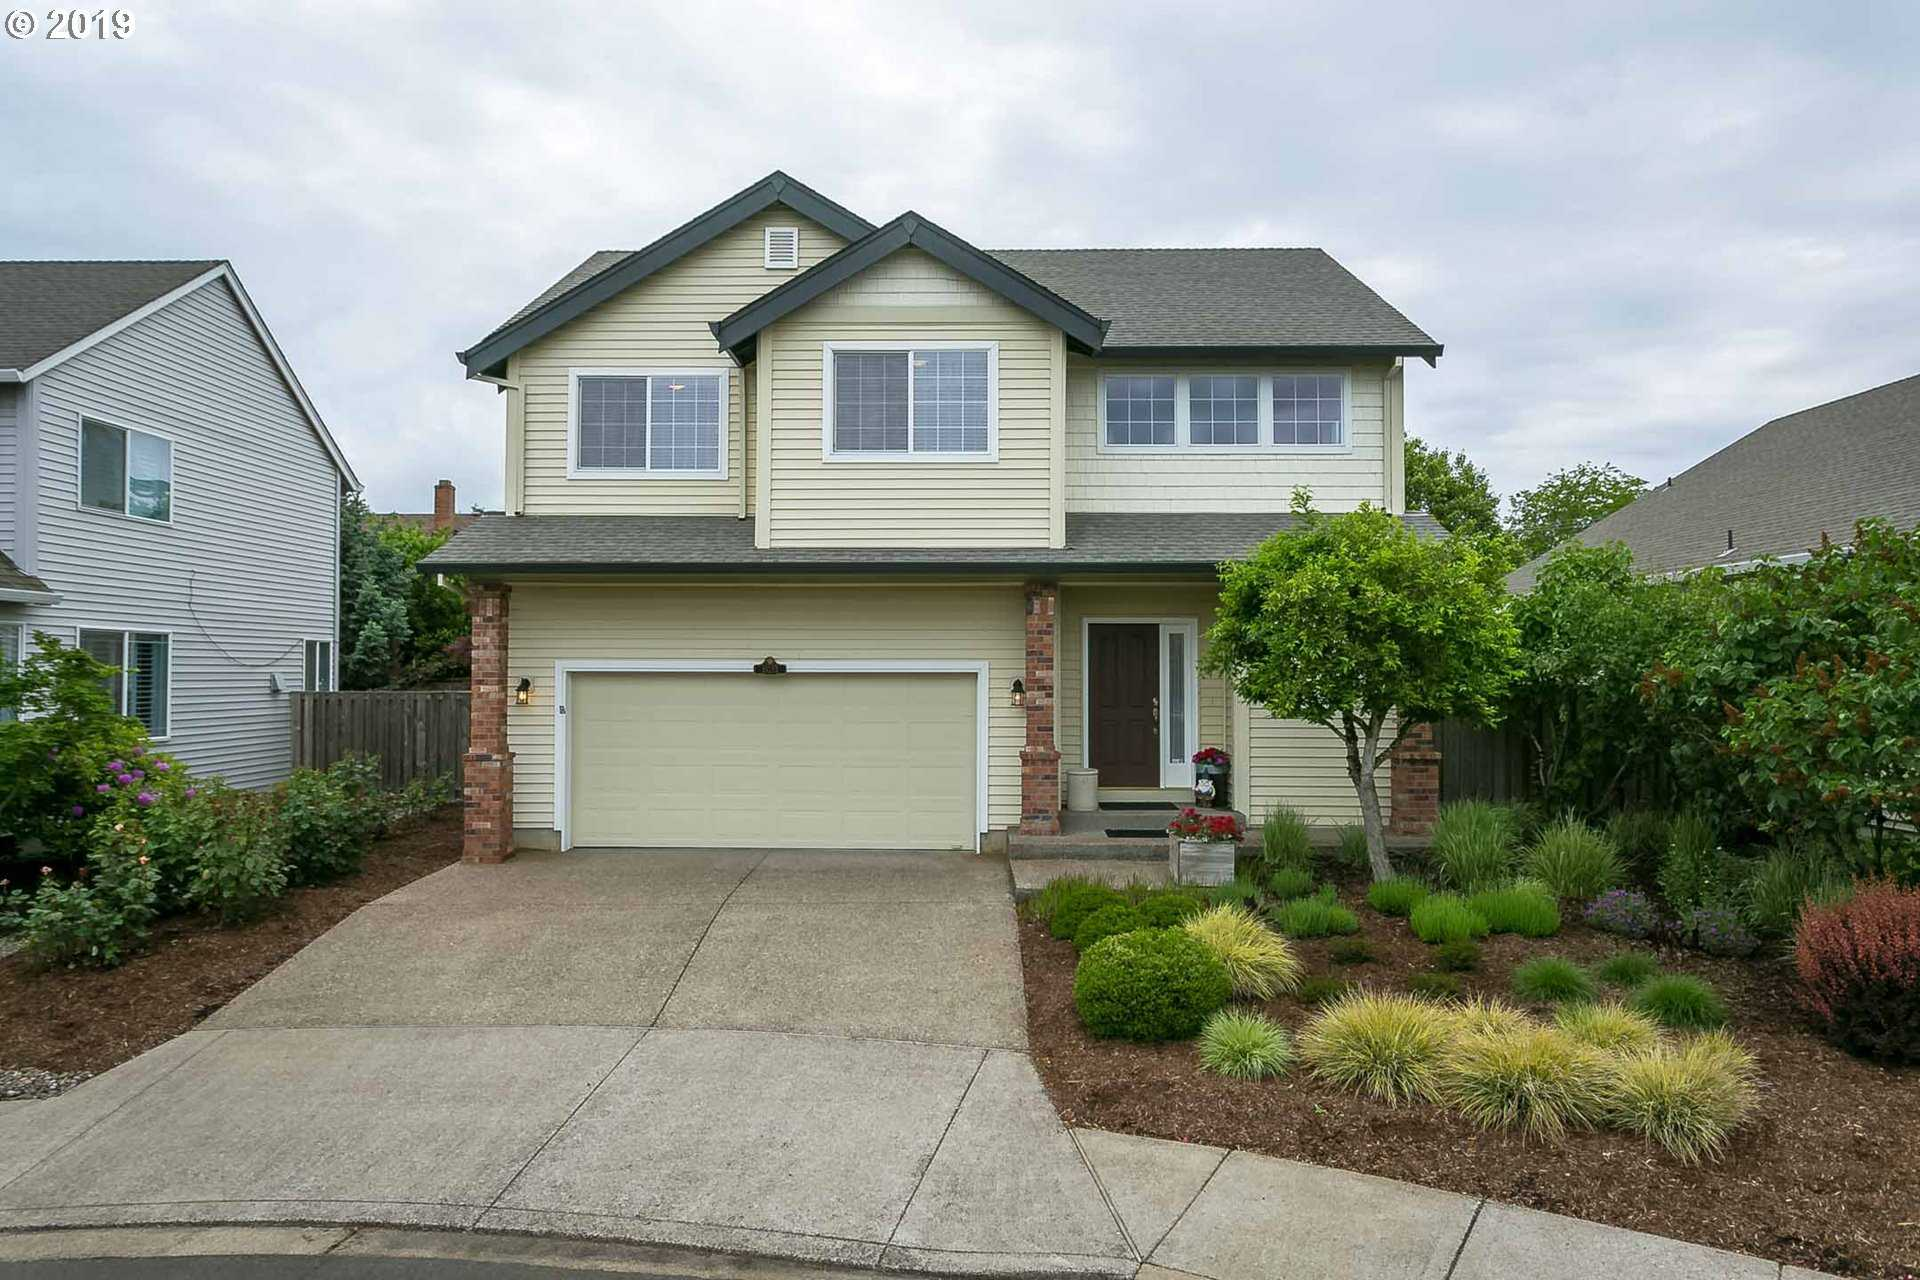 $470,000 - 3Br/3Ba -  for Sale in Applewood Park, Tigard